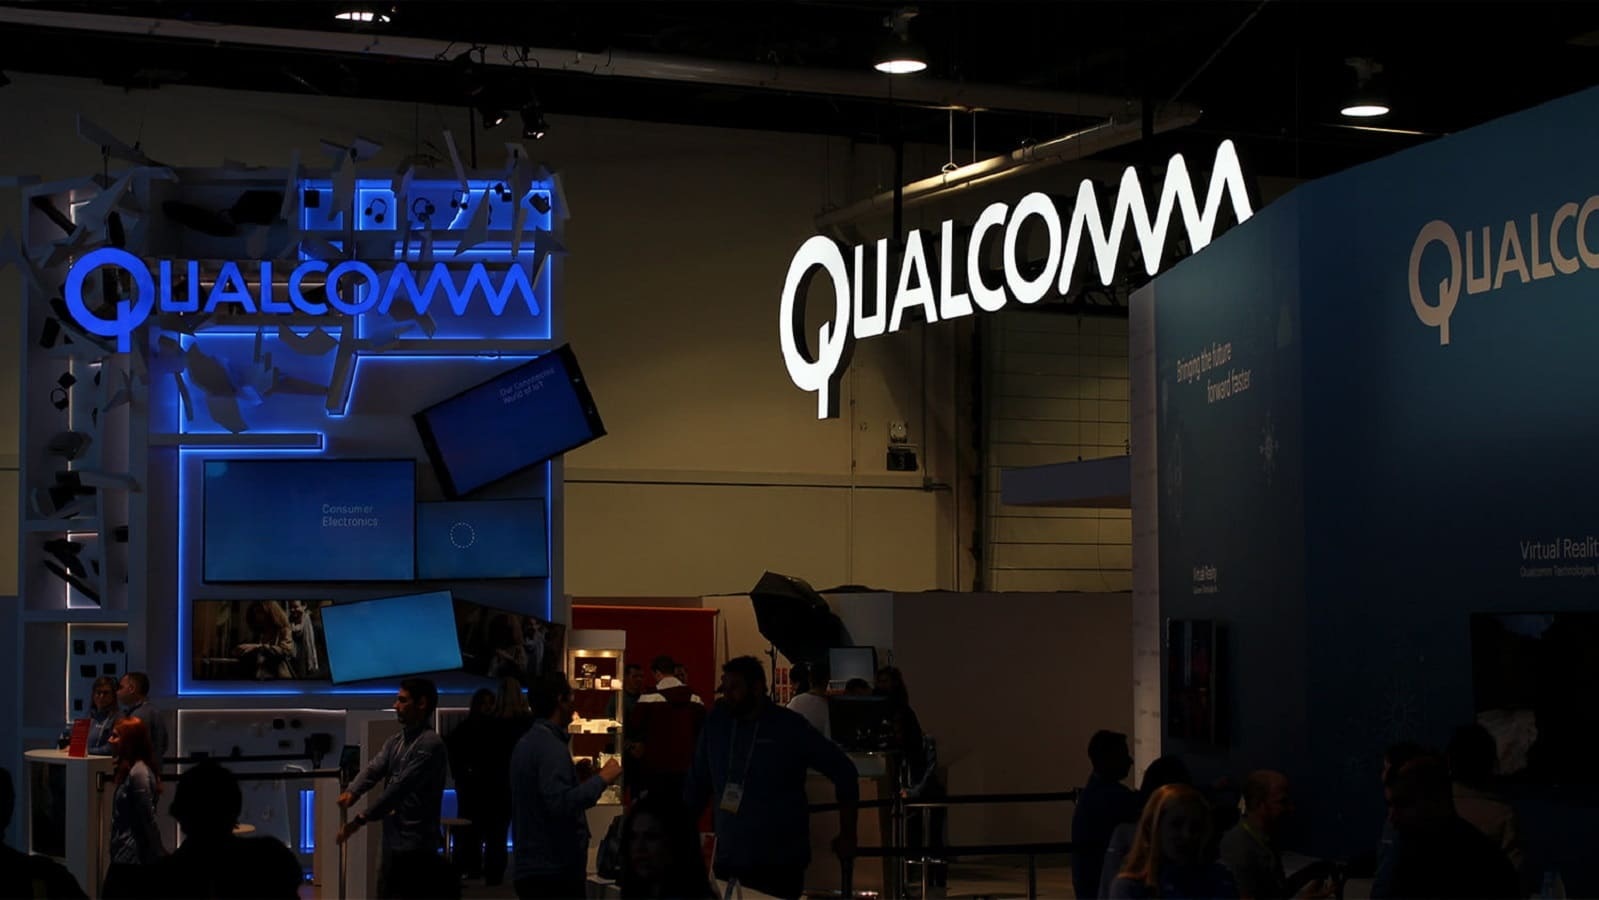 qualcomm signage hanging up near booth